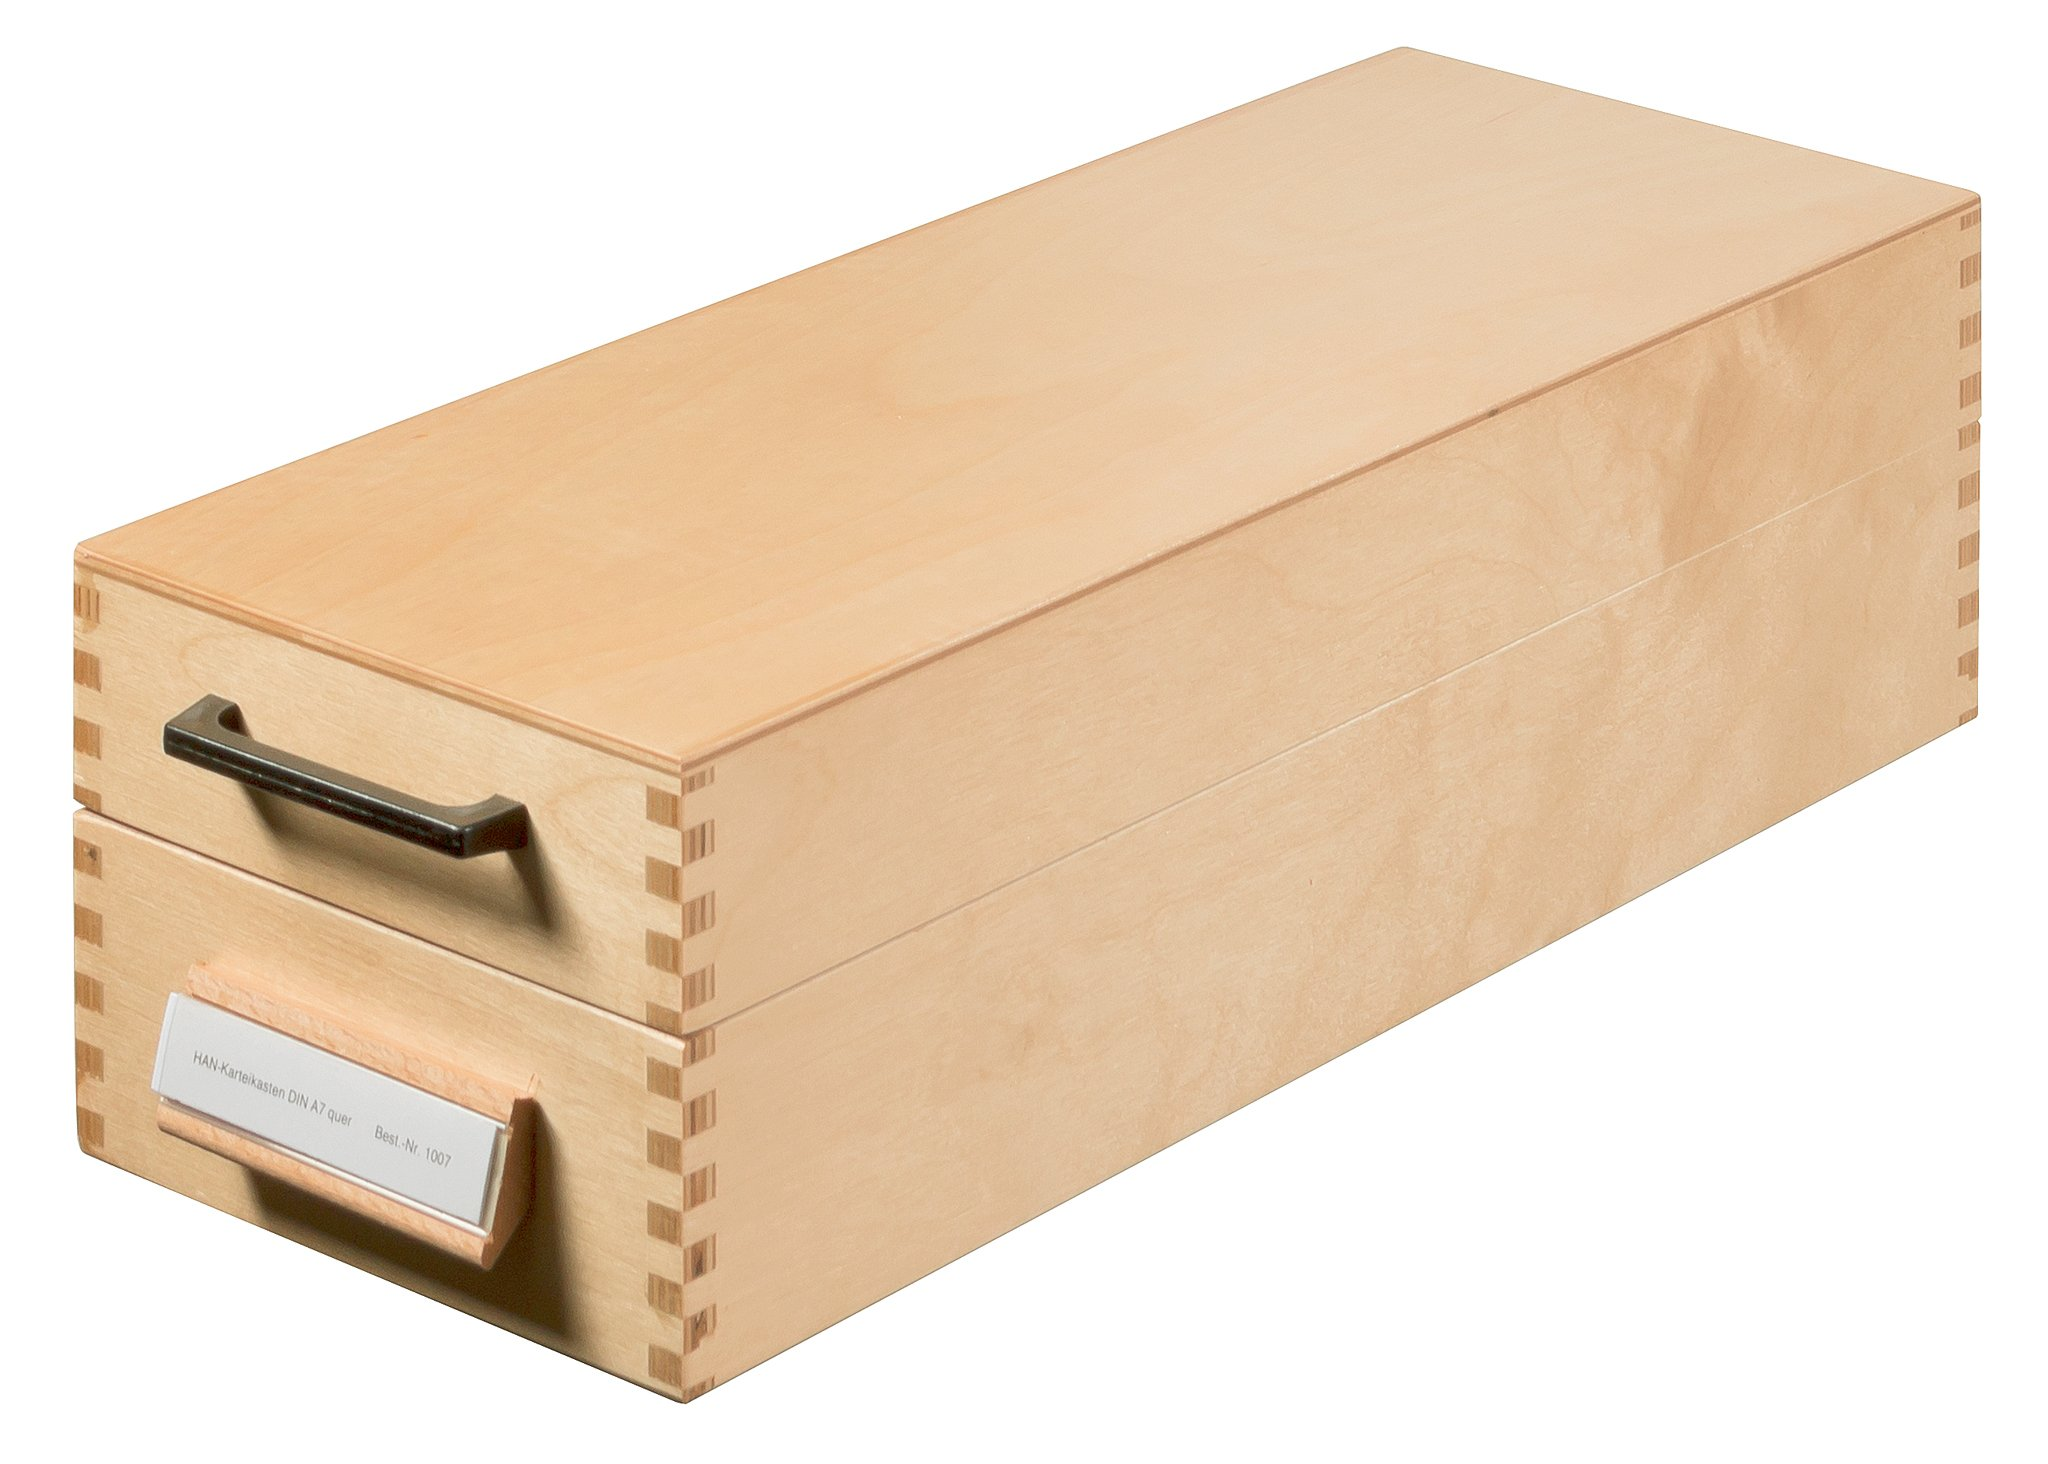 HAN 1007 Index Card Box Wood for Maximum 1500 Cards A7 Landscape 150 x 110 x 380 mm by HAN